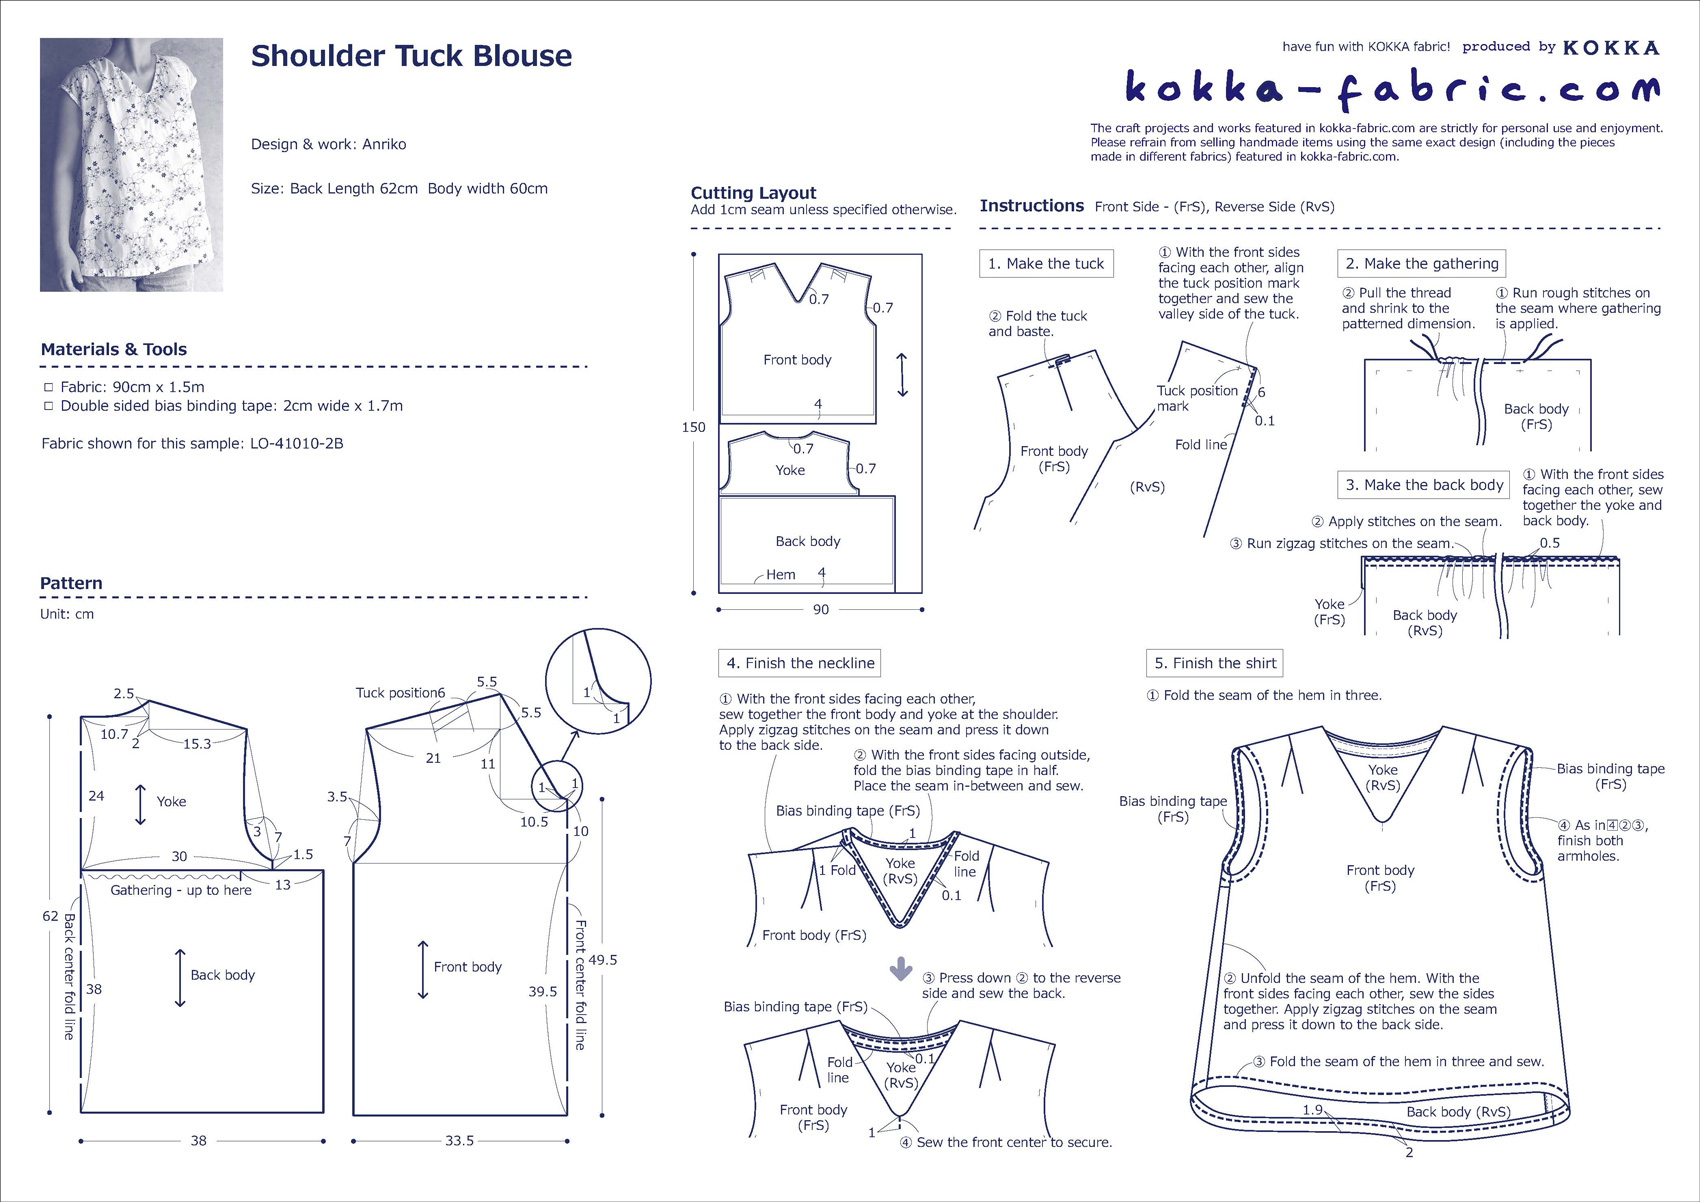 CS314_Shoulder_Tuck_Blouse_E